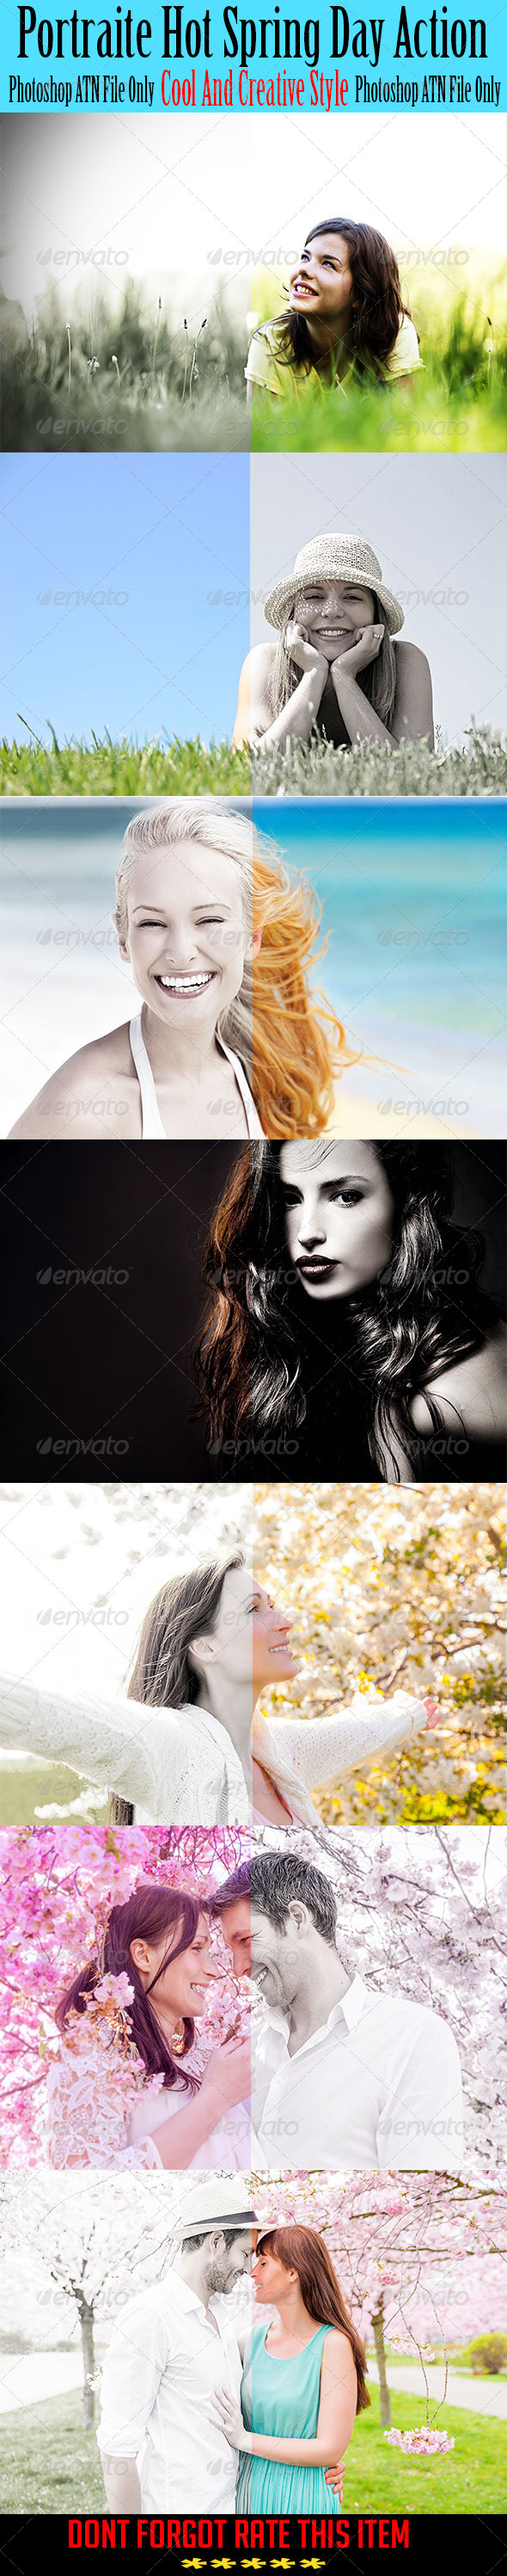 GraphicRiver Portraite Hot Spring Day Action 7474678